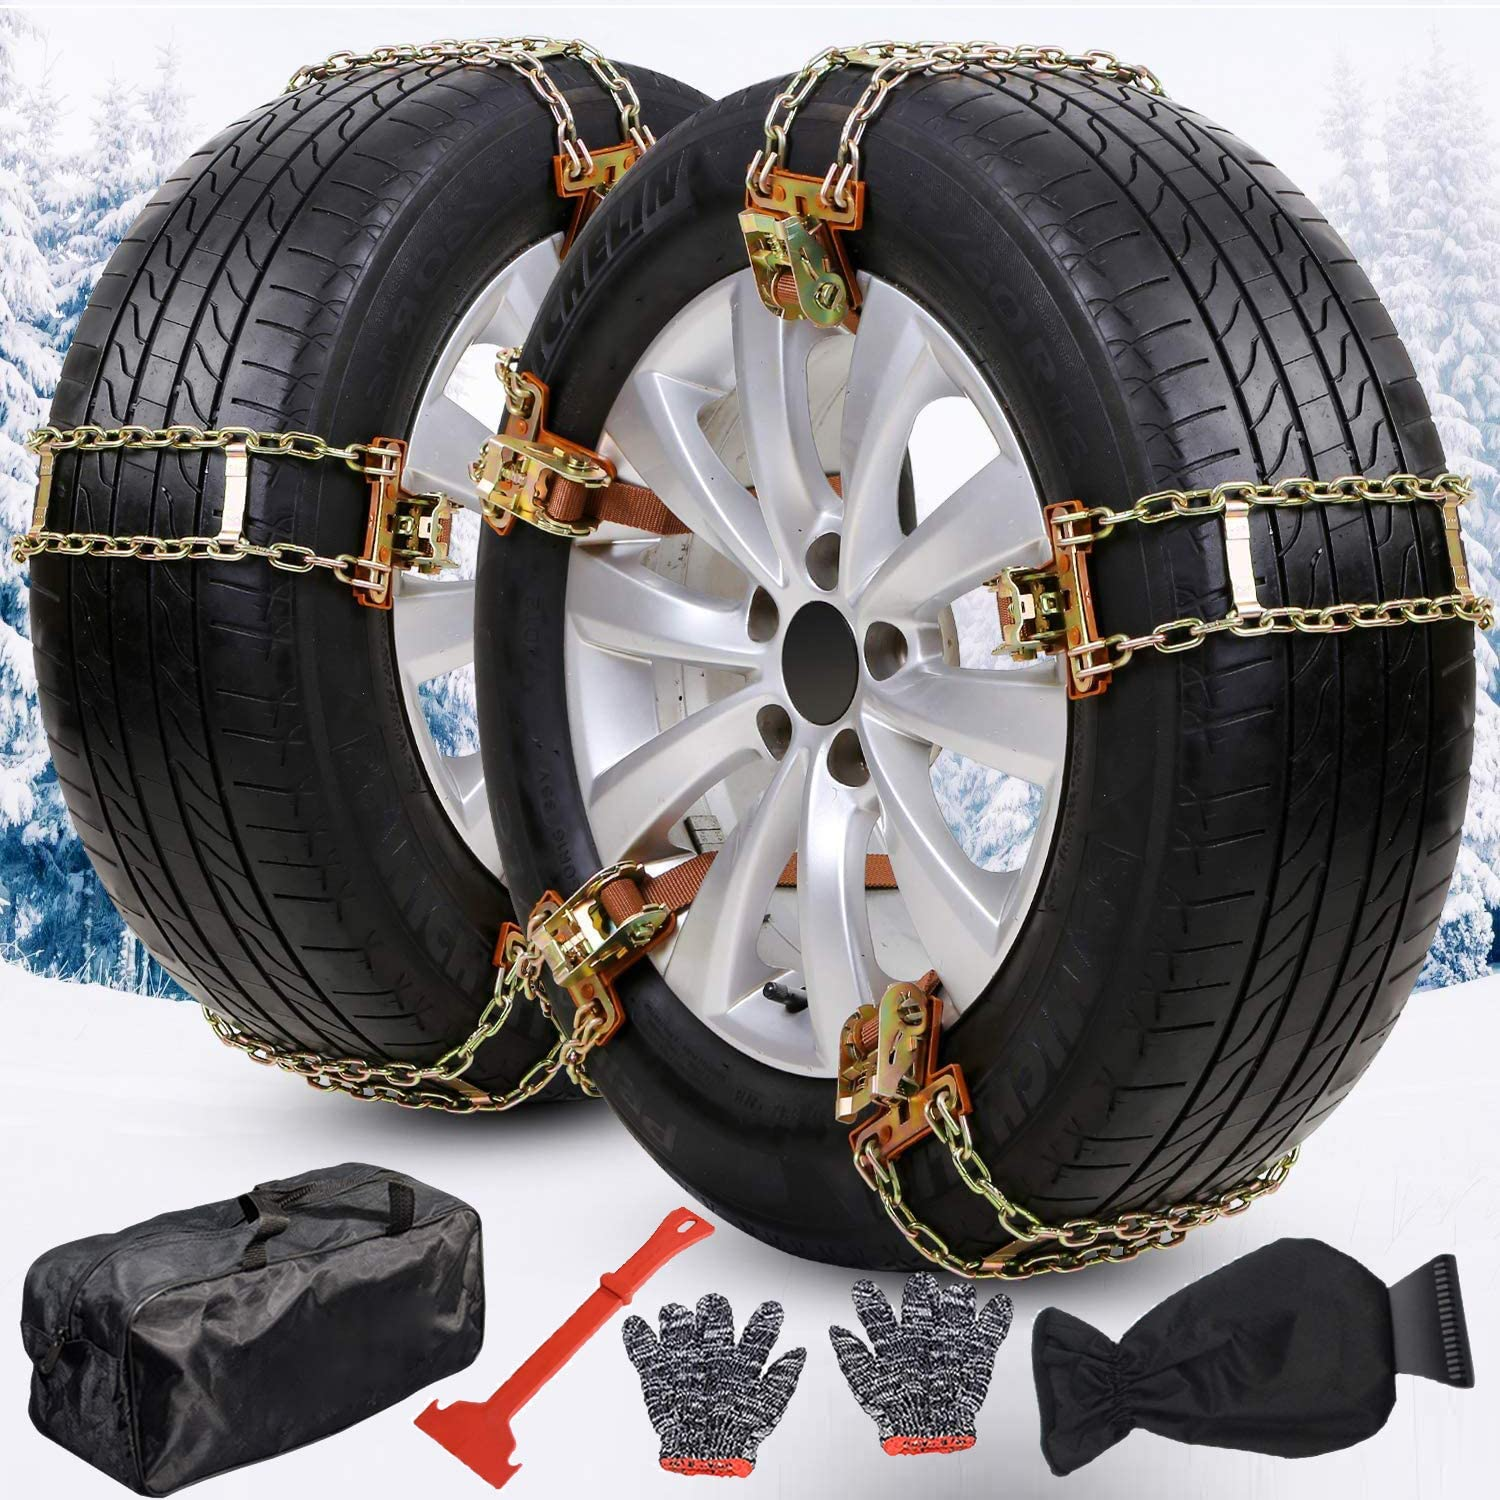 HZT Snow At the price Bombing free shipping of surprise Chains Update 8PCS Car Ch Passenger Tire